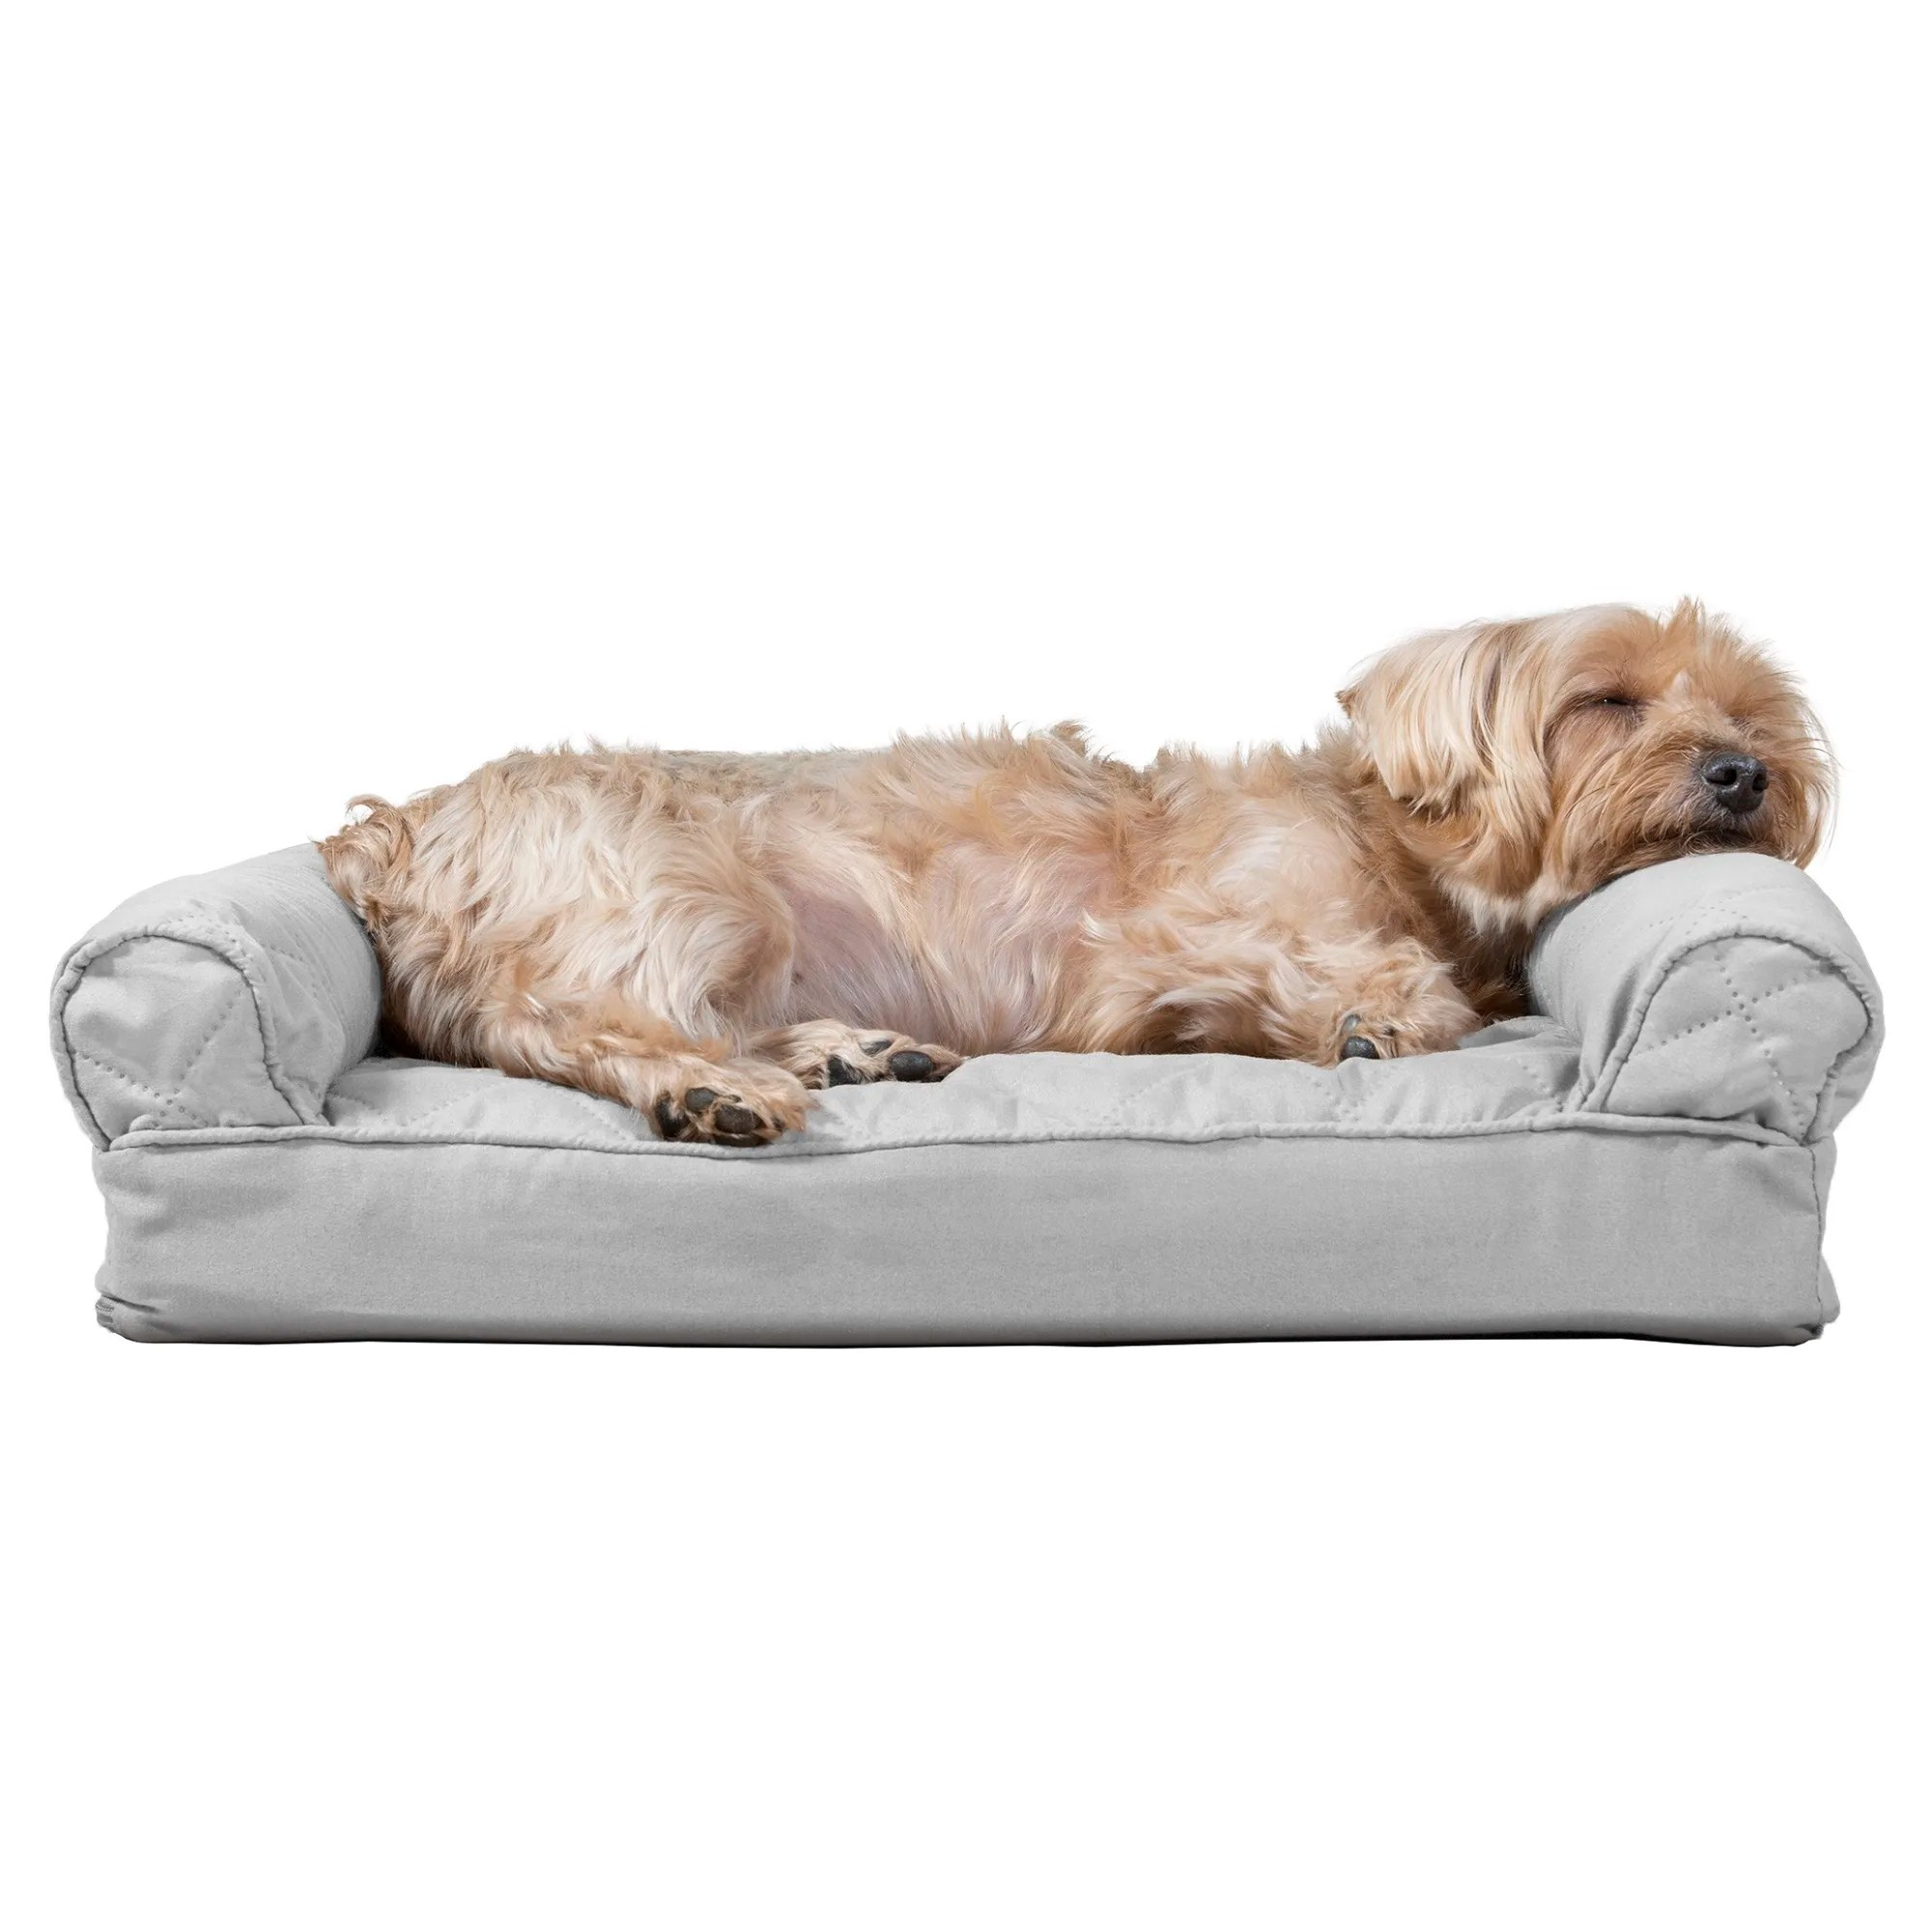 furhaven quilted pillow sofa dog bed silver gray 20 l x 15 w